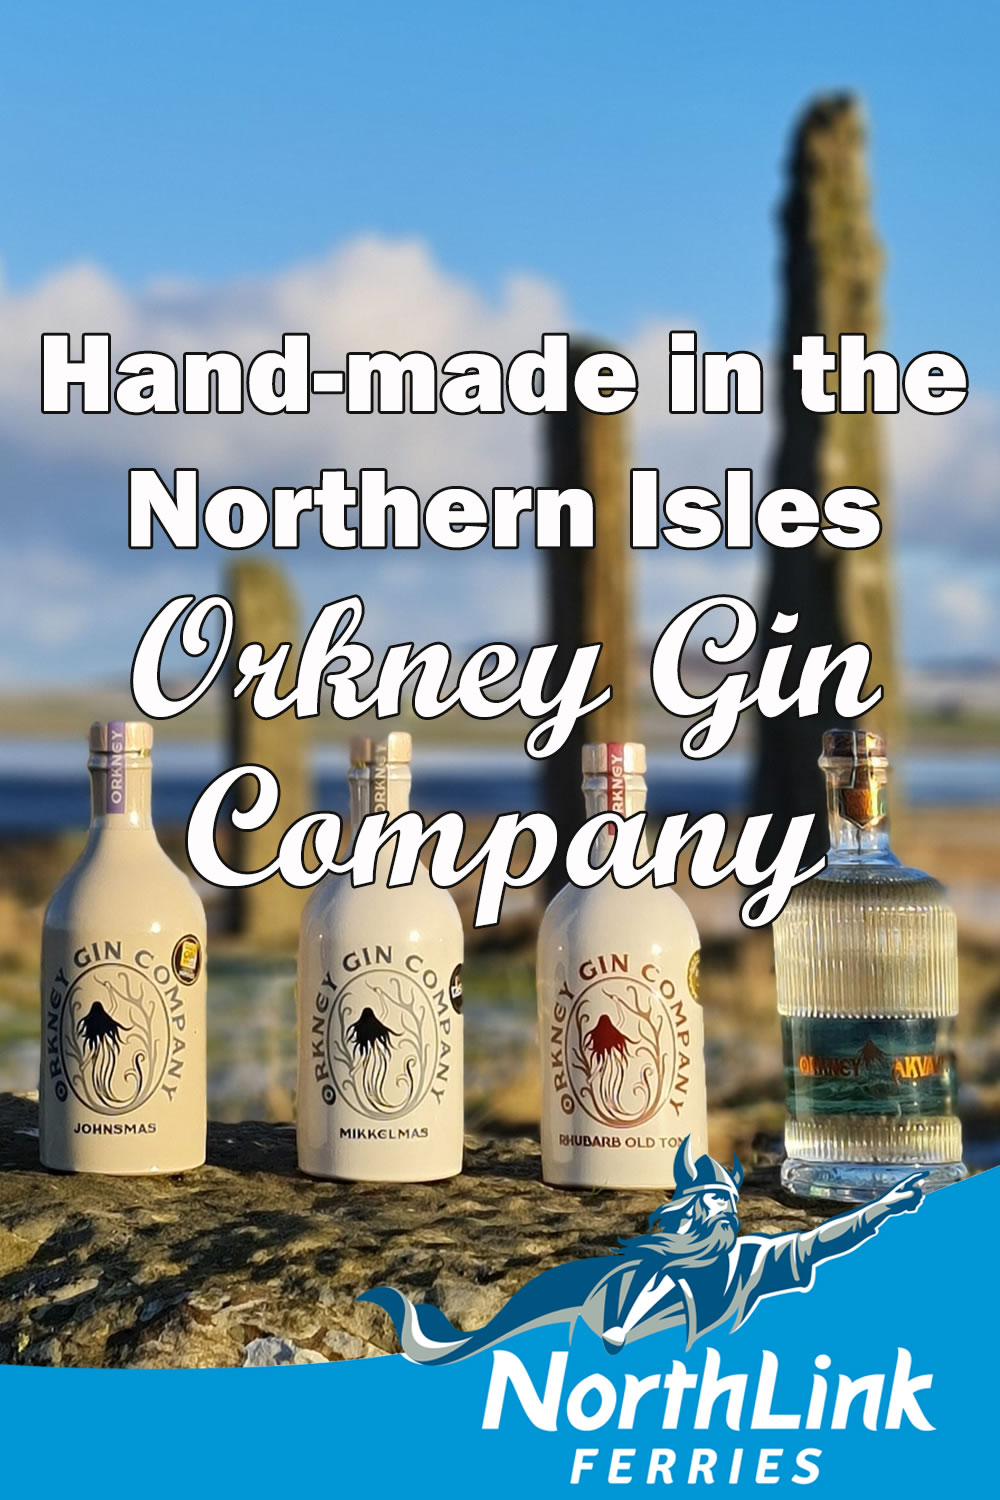 Hand-made in the Northern Isles - Orkney Gin Company